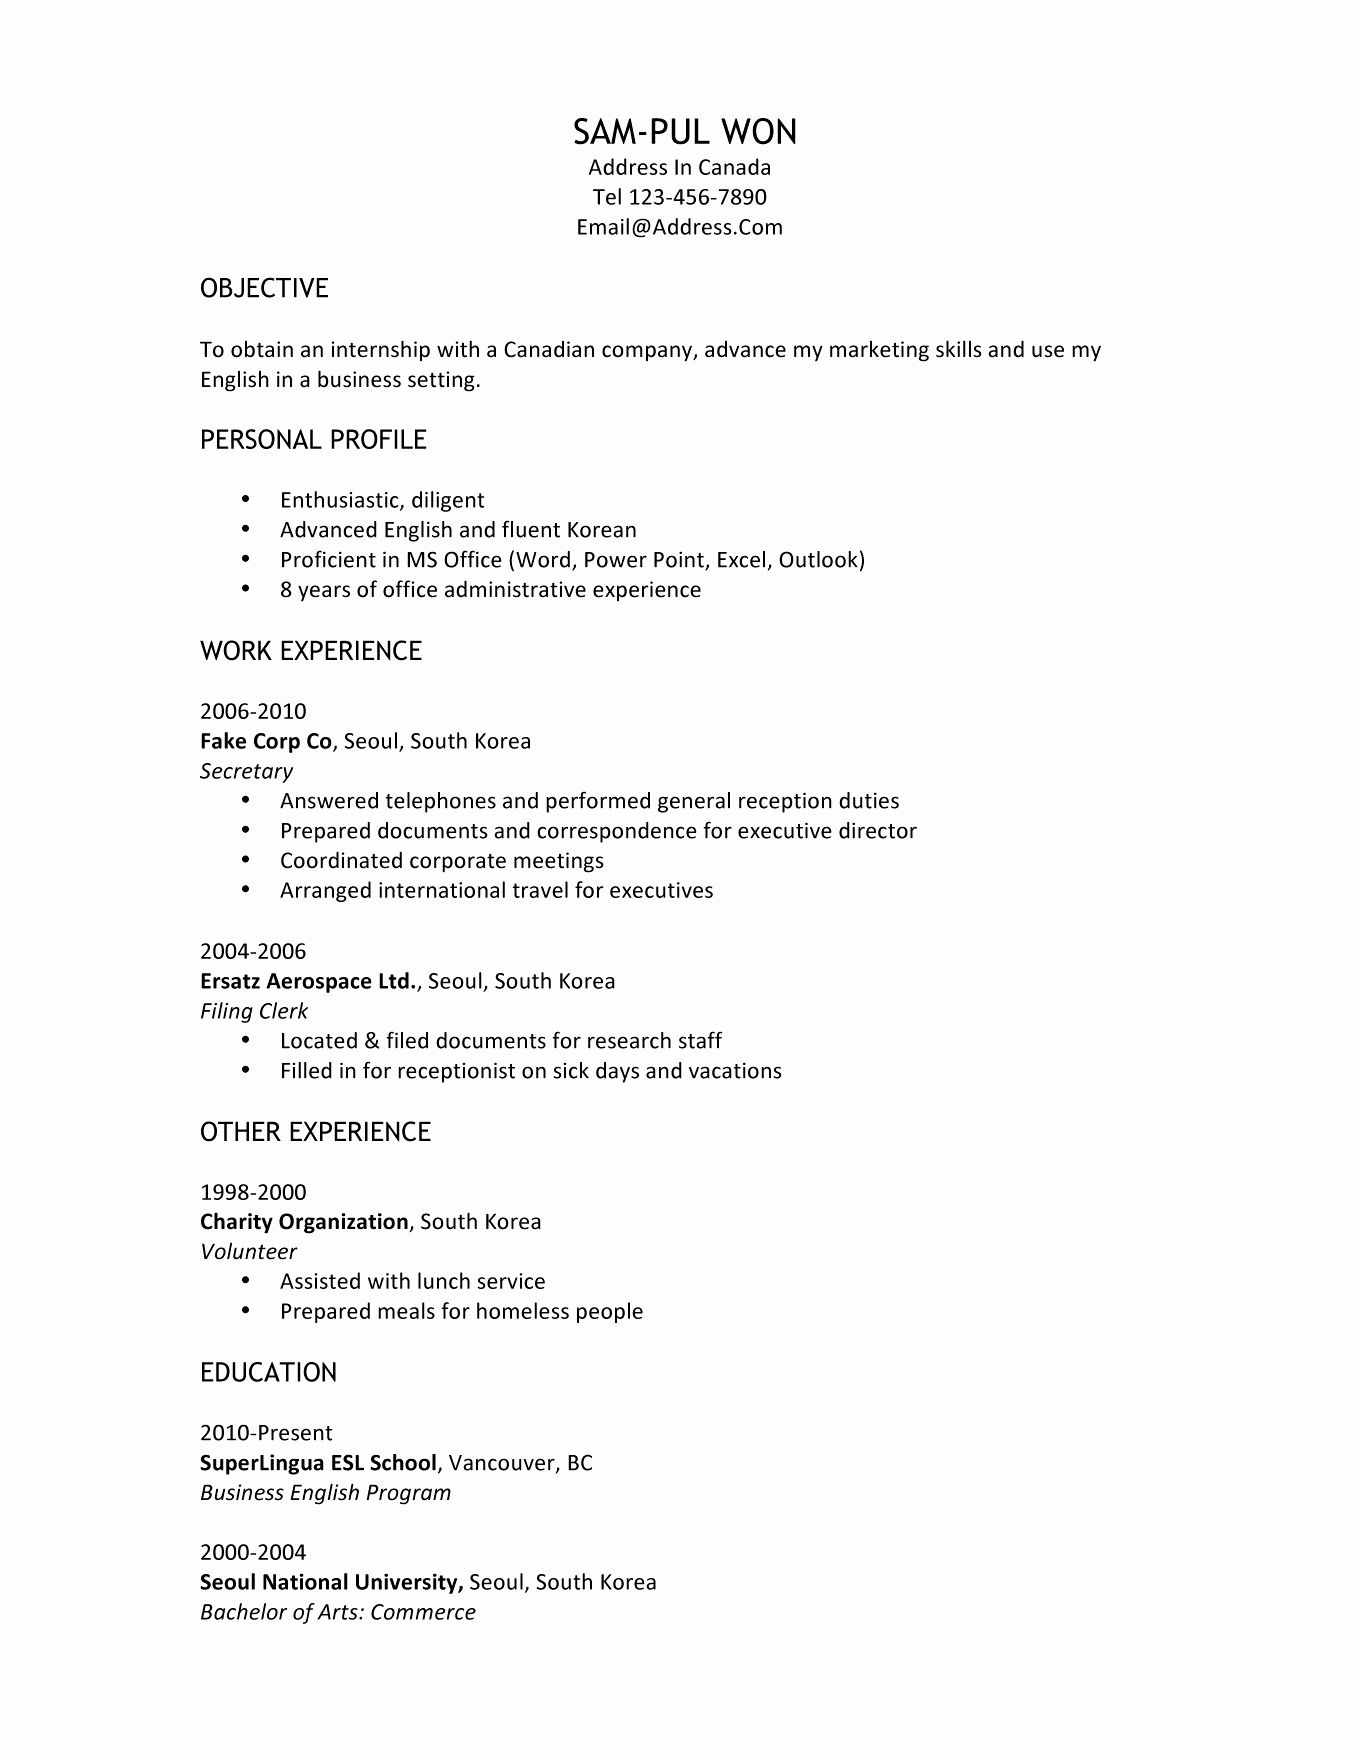 resume sle for canada inspirational resume sles canada targer golden ...